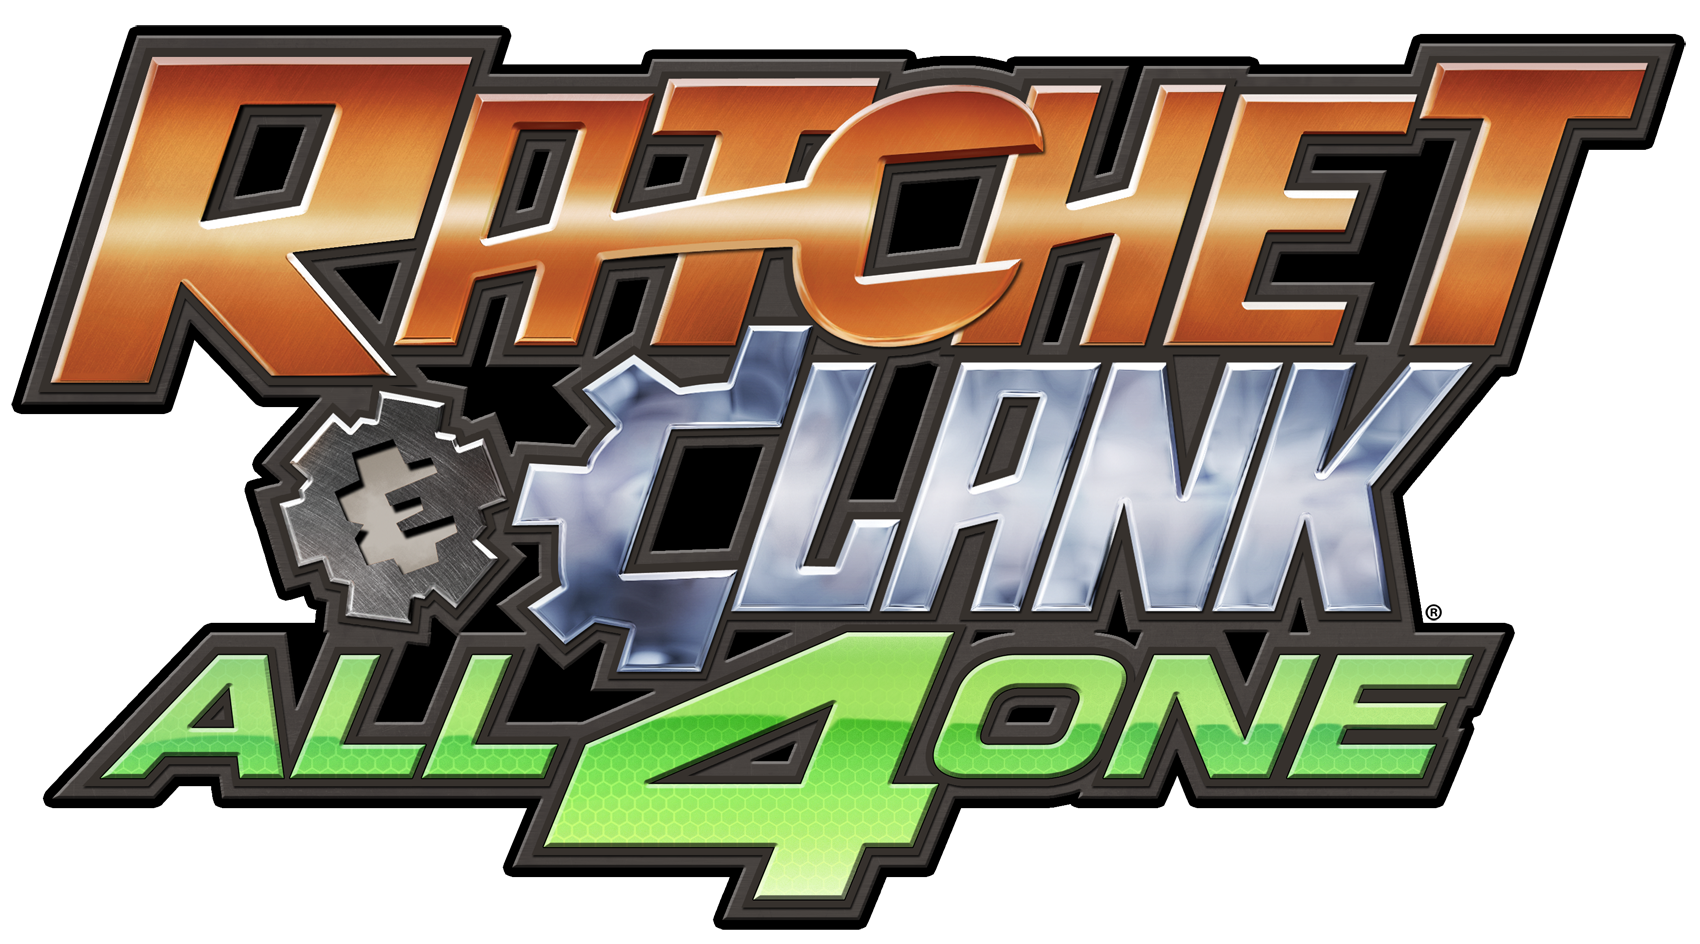 Ratchet & Clank: All 4 One – A Party of One